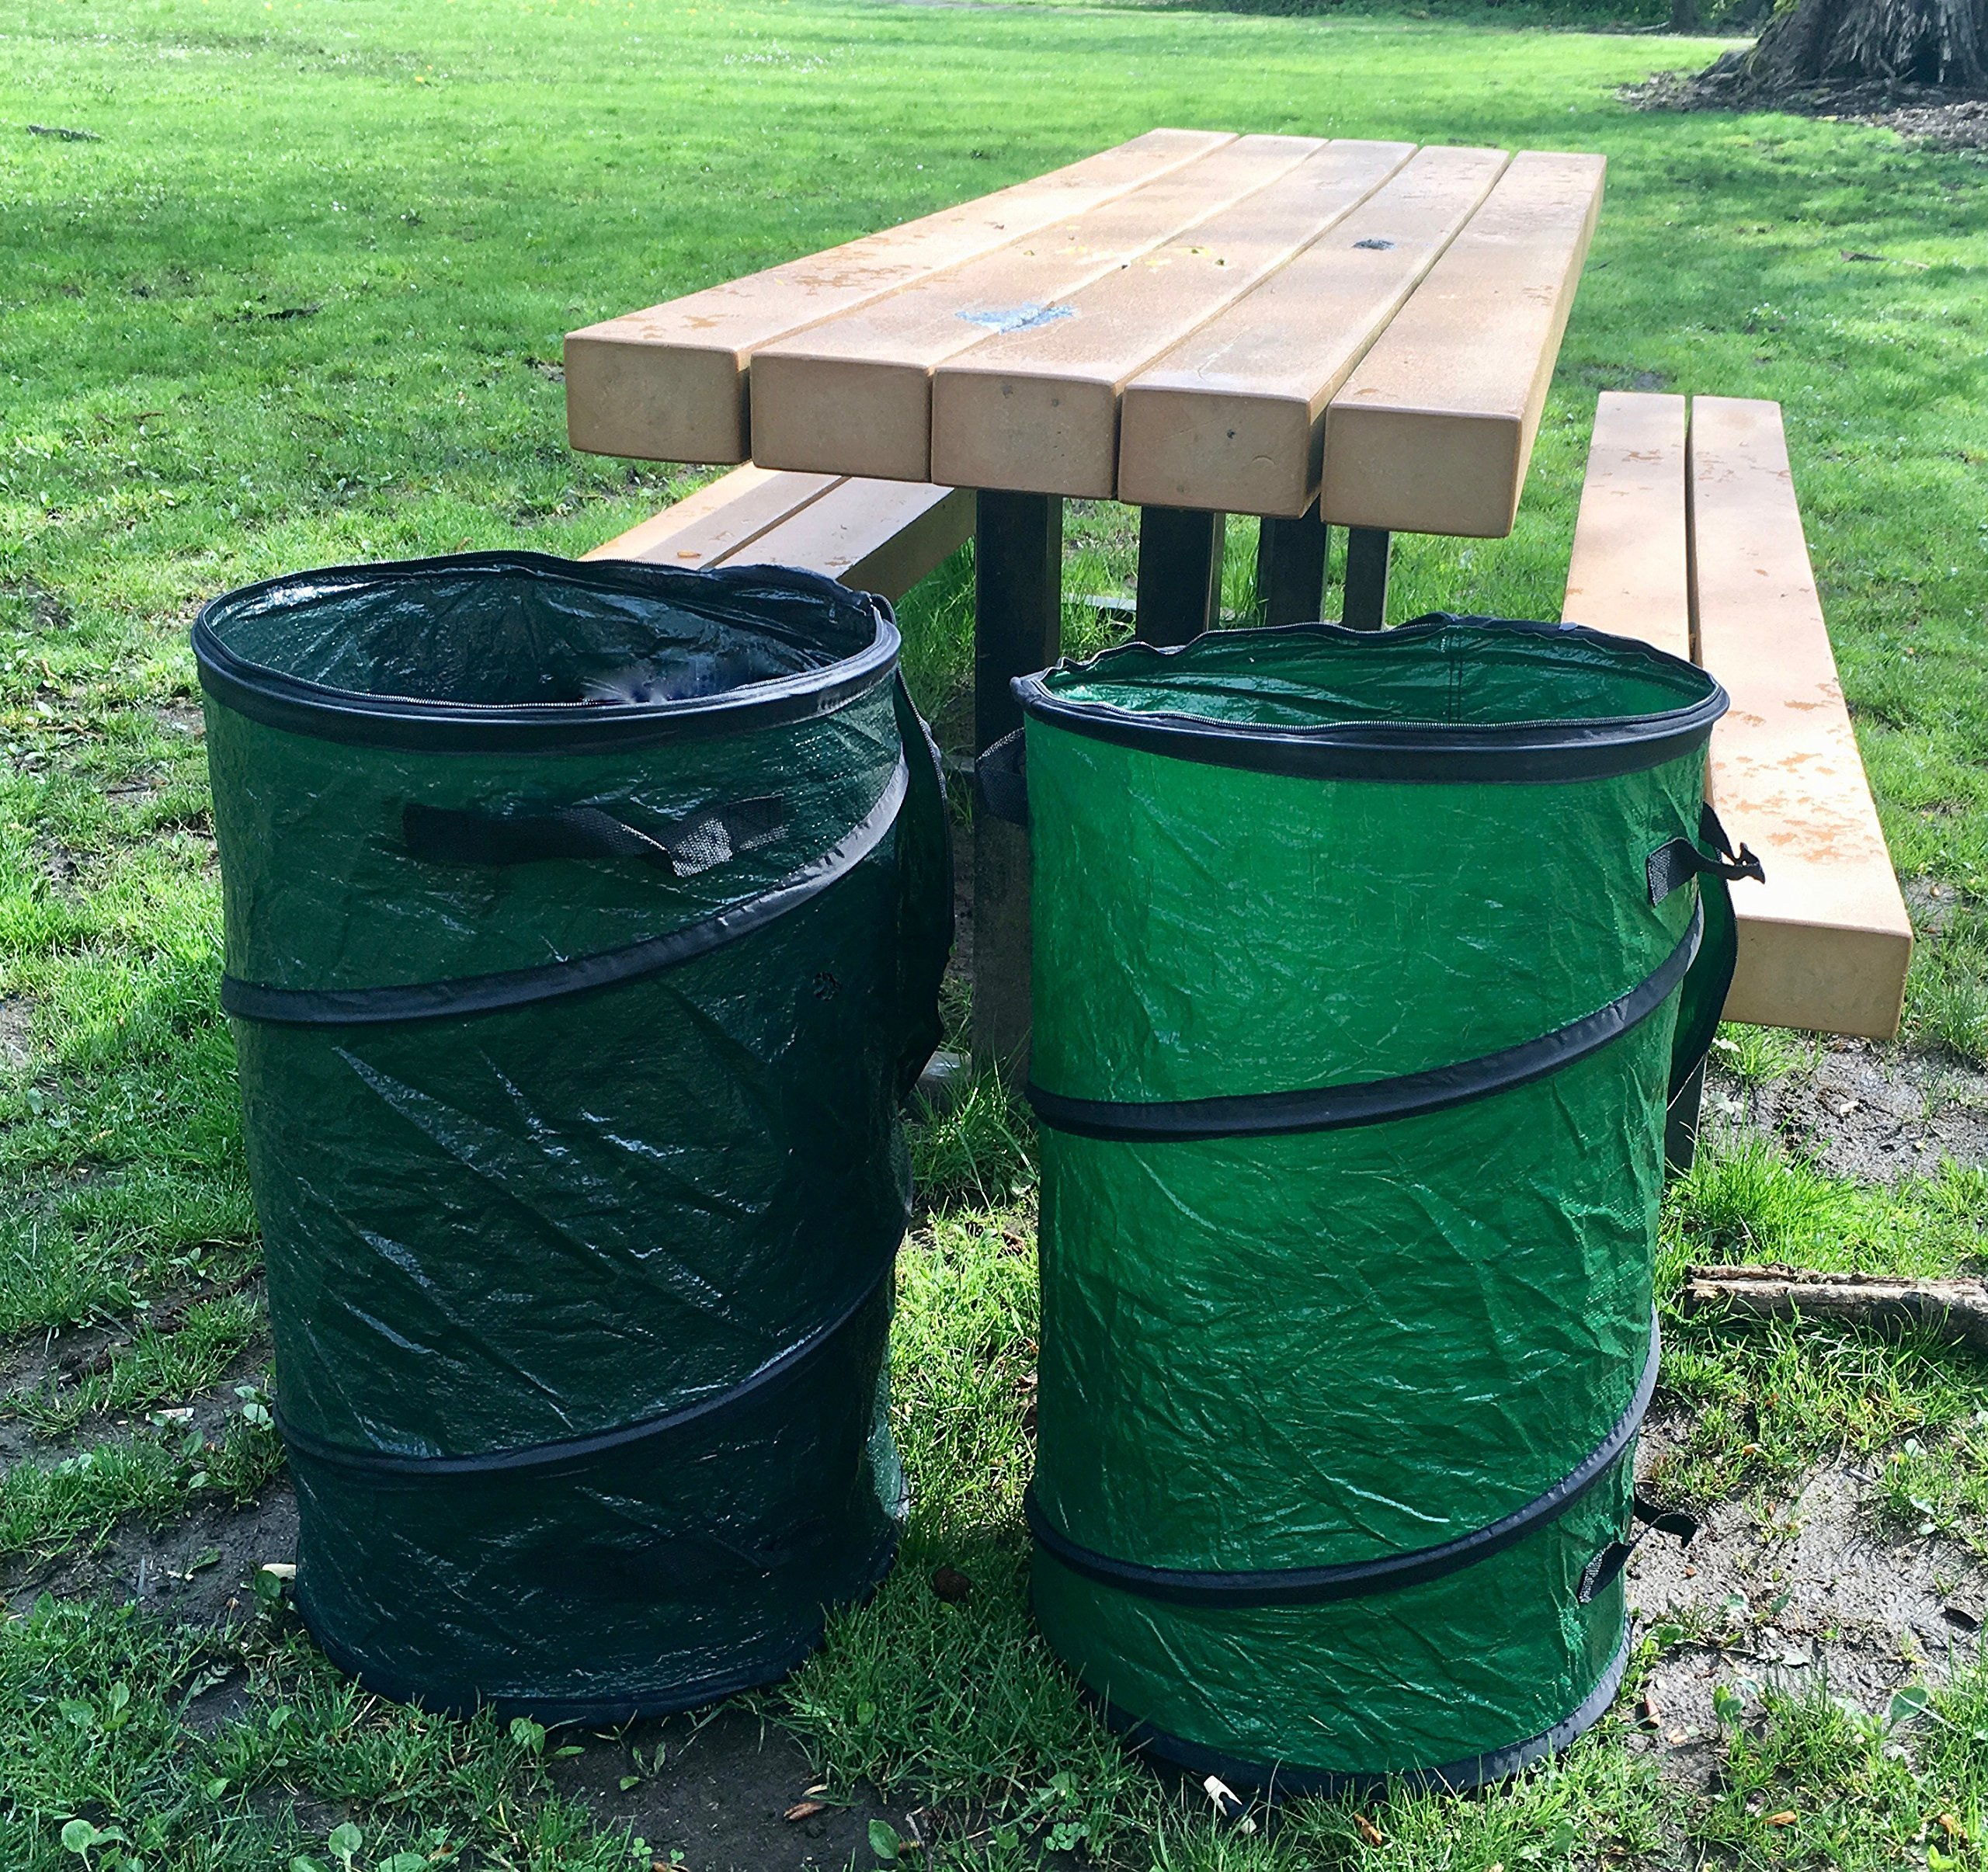 oswego pop up collapsible travel camping trash and recycle containers 2 pack 96647476315 ebay. Black Bedroom Furniture Sets. Home Design Ideas